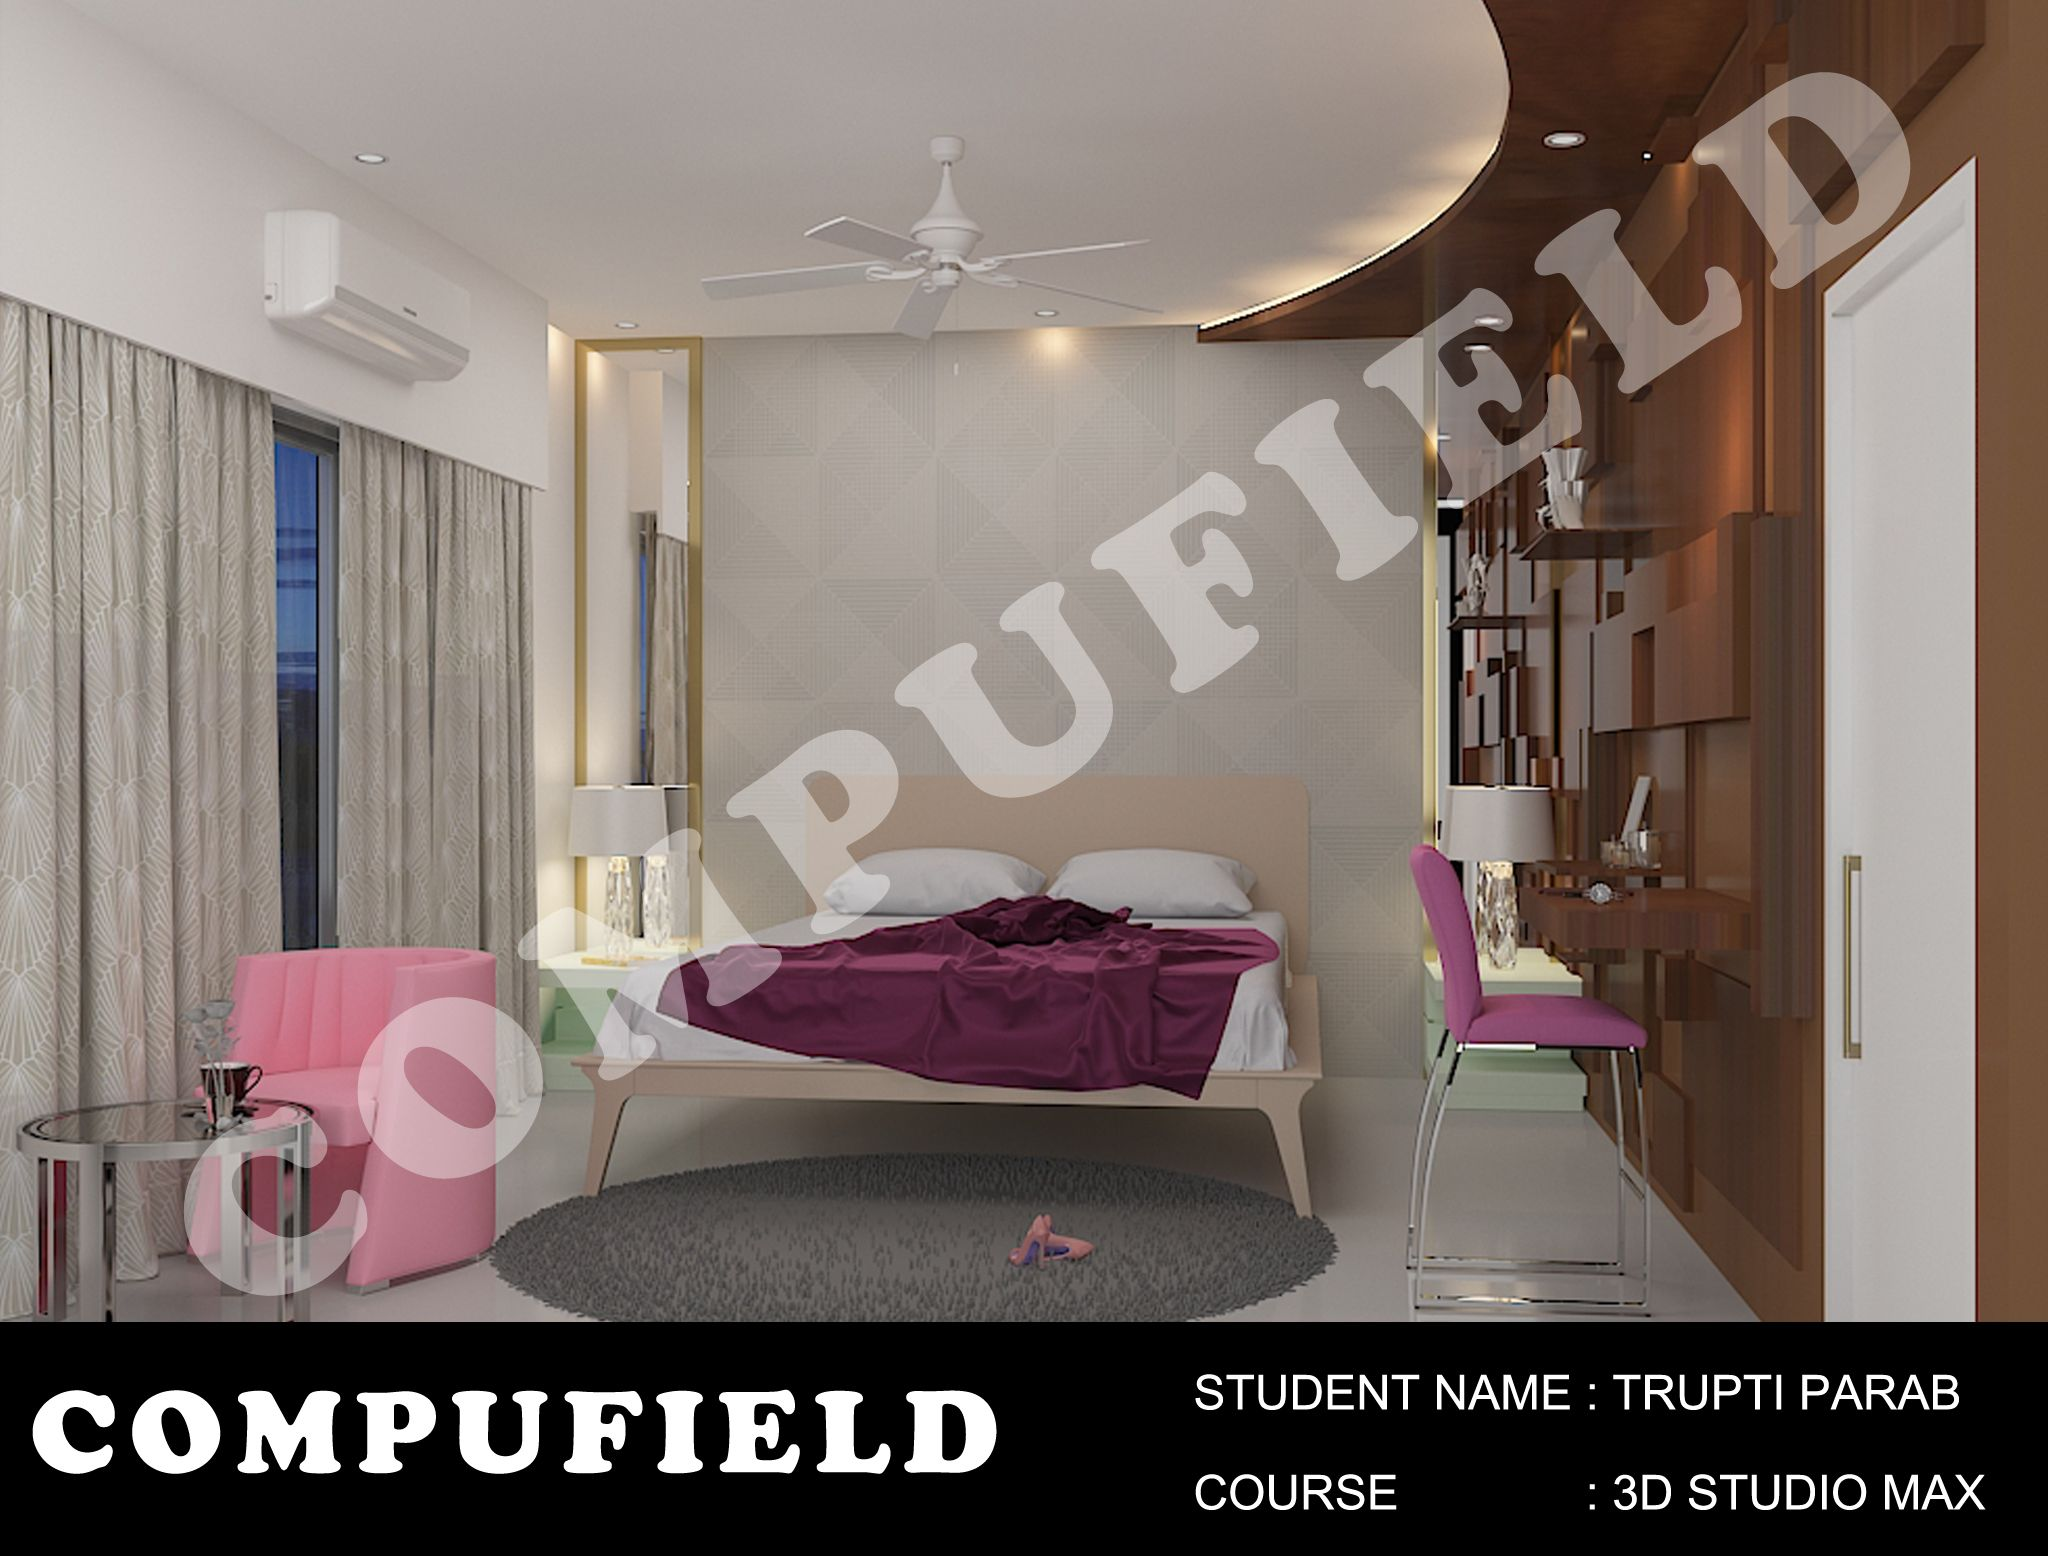 Interiordesigning Project Done By Our Student Ms Trupti Parab At Compufield Computer Institute Design Course Web Animation Institute